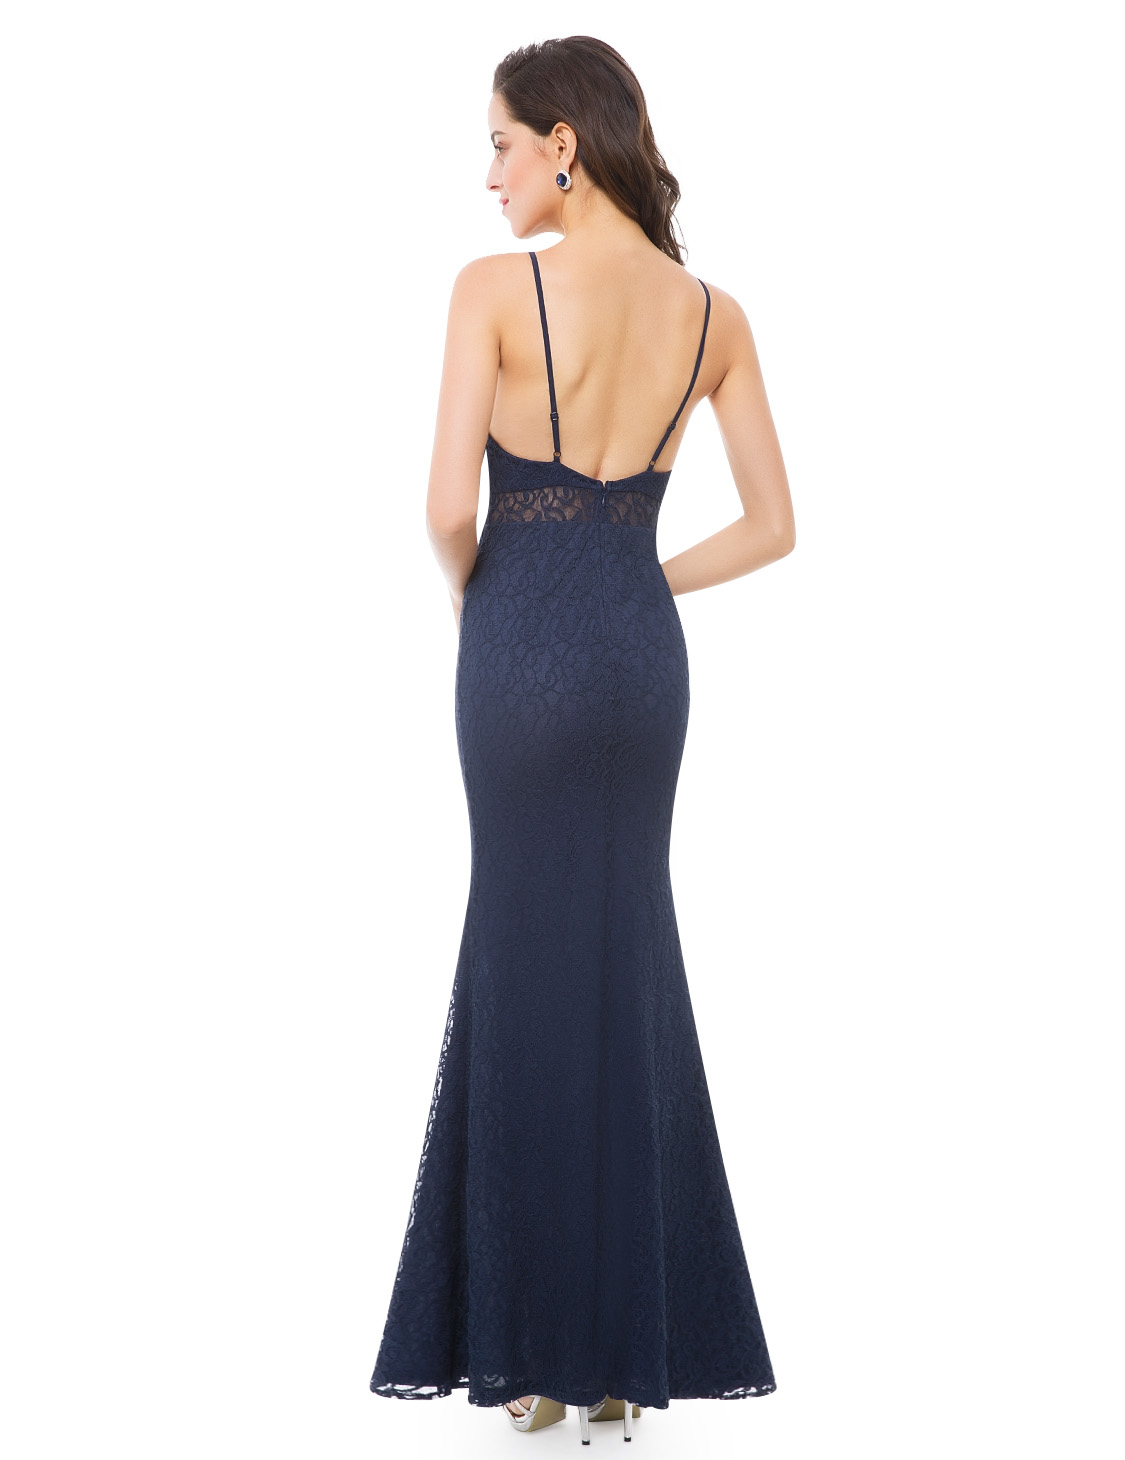 Ever-Pretty-Sexy-Backless-Evening-Dresses-Lace-Mermaid-Prom-Party-Dress-07033 thumbnail 10